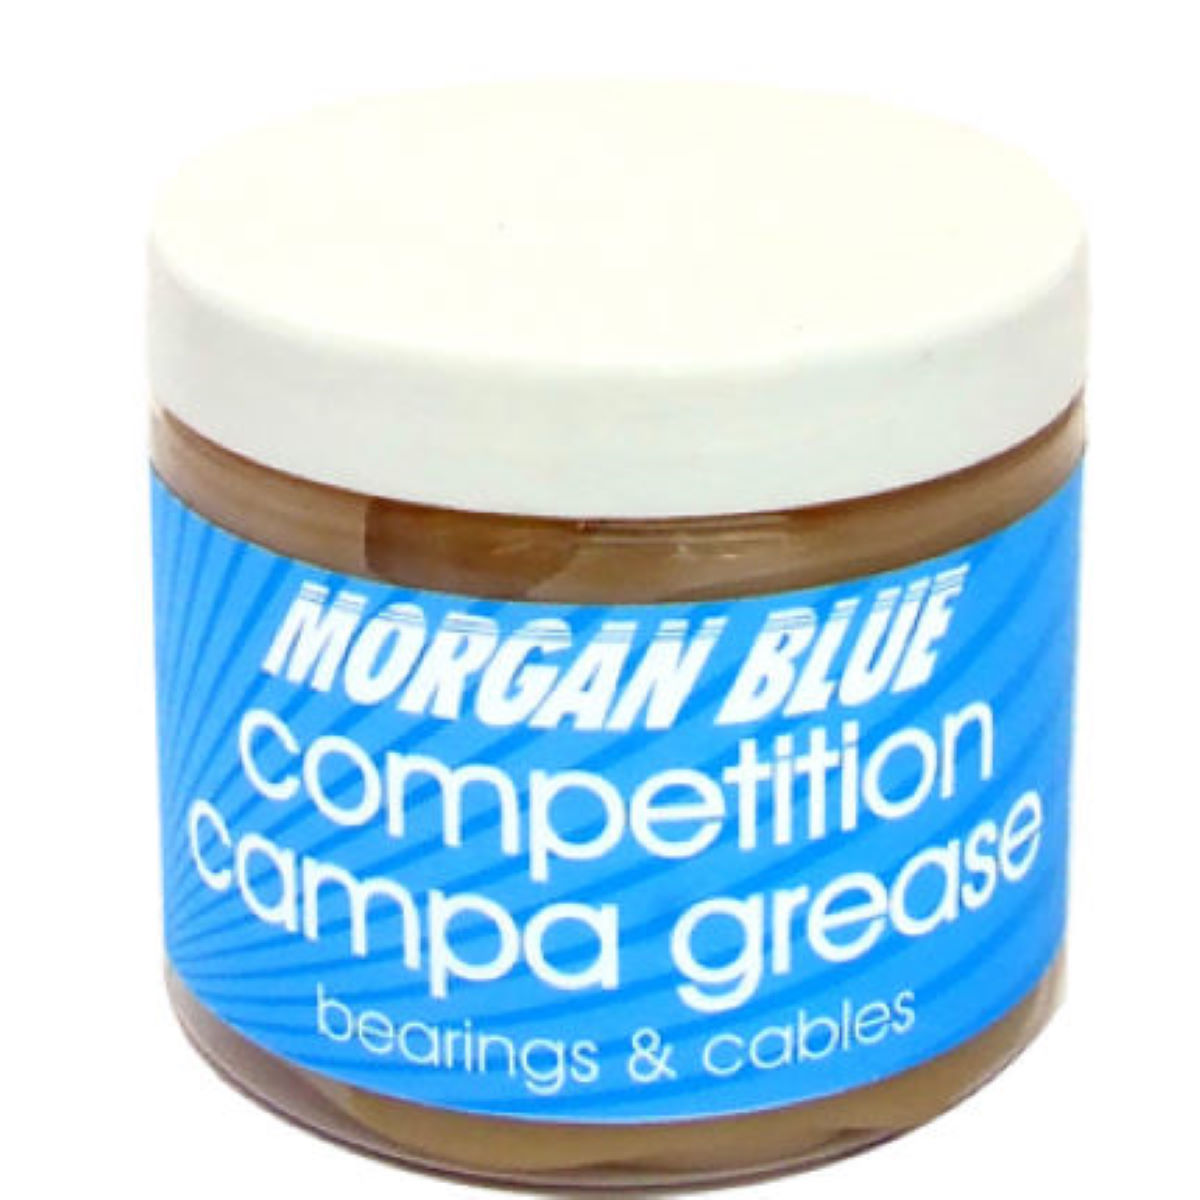 Grasa Morgan Blue Competition Campa (200 ml) - Grasas